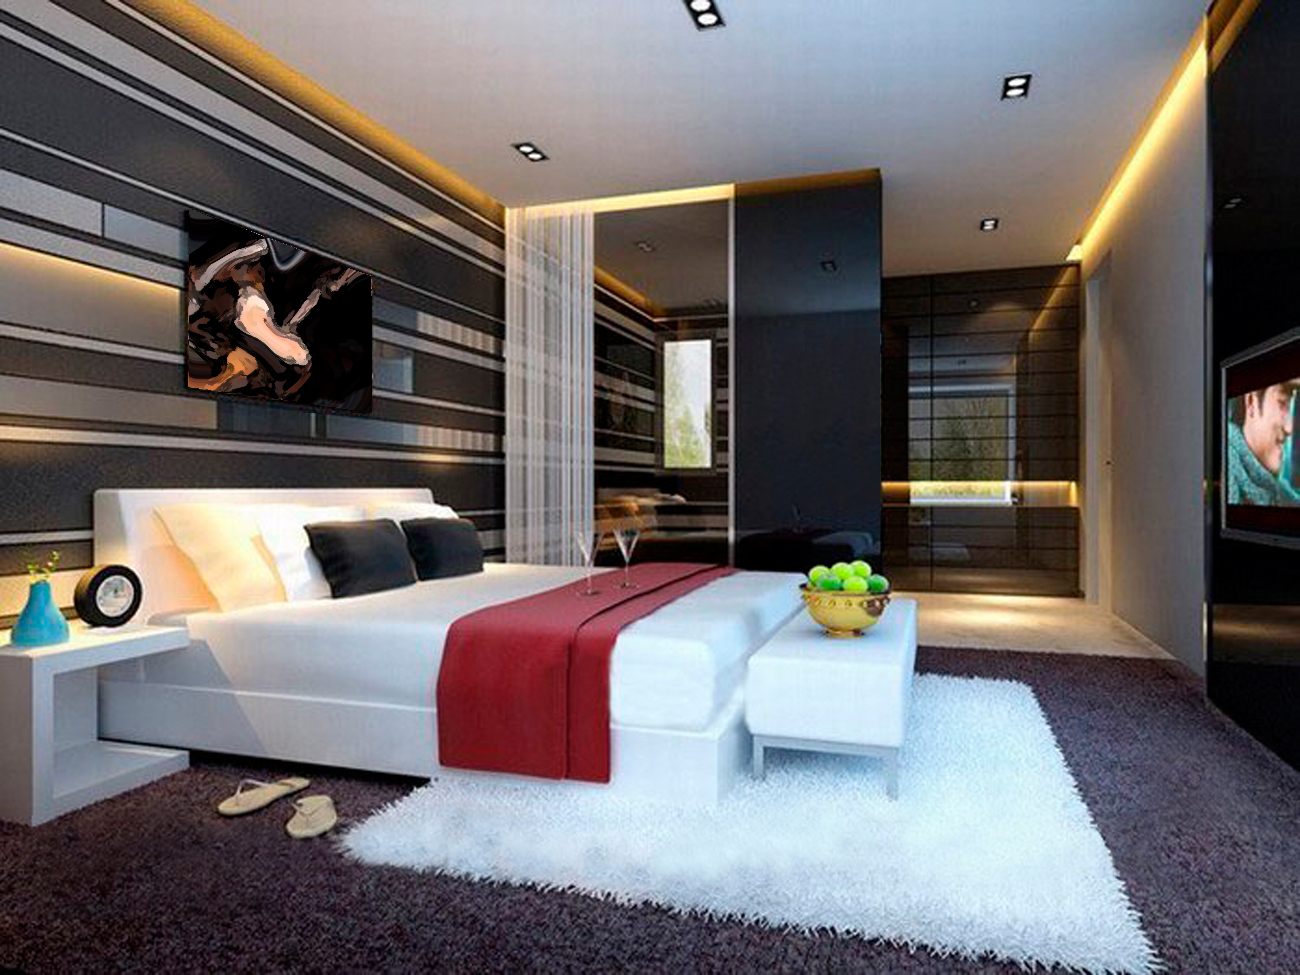 3d design bedroom 3d high class architectural interior bedroom designs 3d power glamorous design decoration well decorated bedrooms pinterest - 3d Design Bedroom